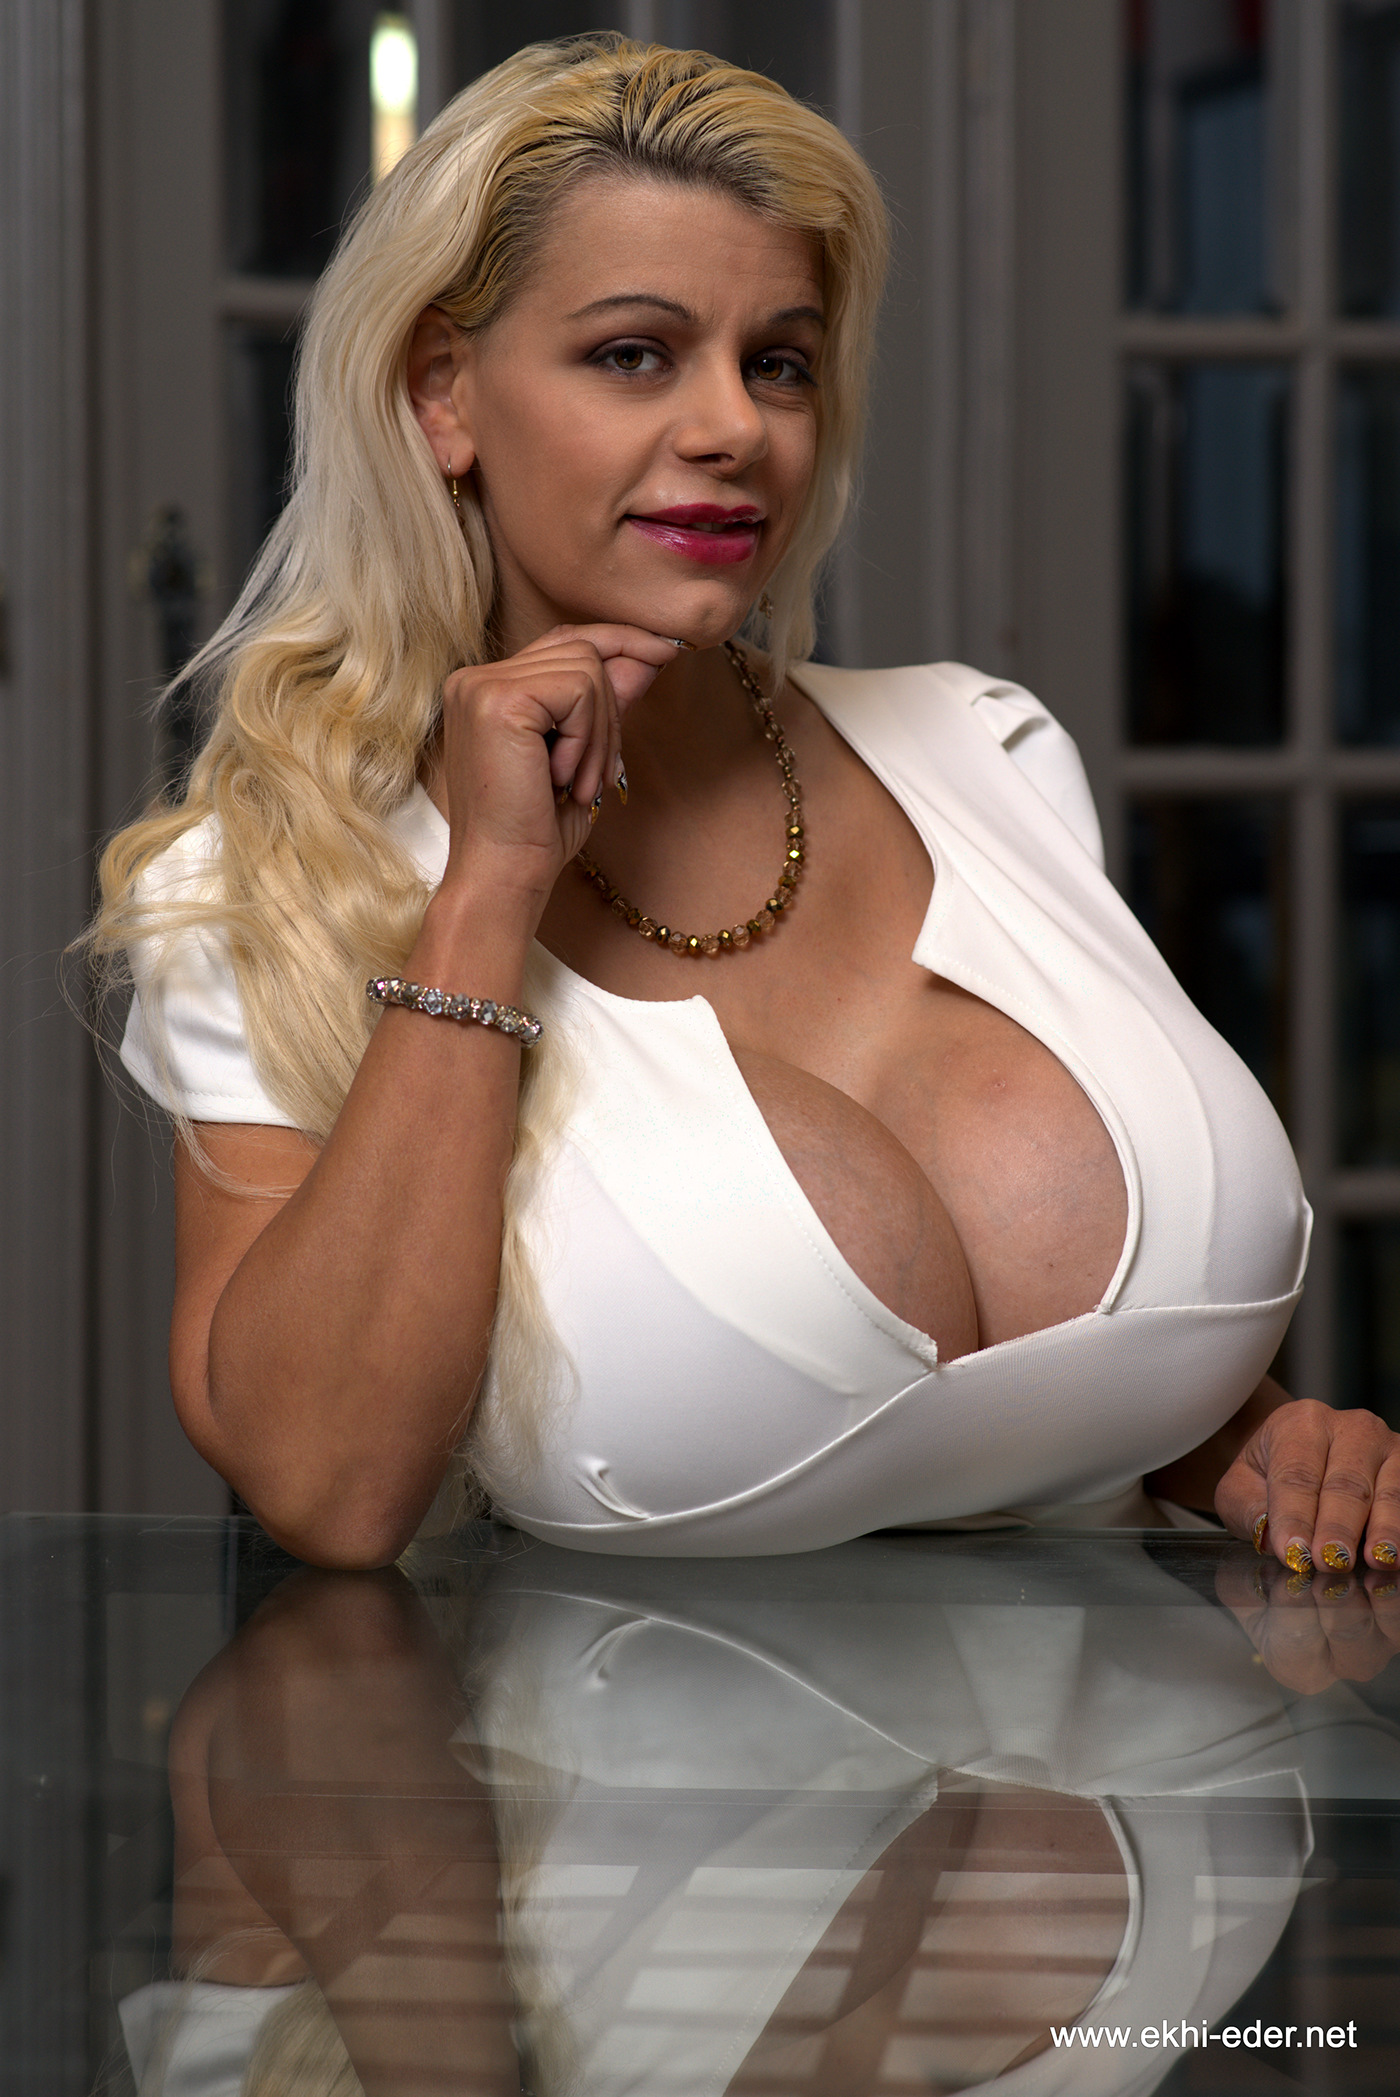 Huge natural titted beauty terry nova